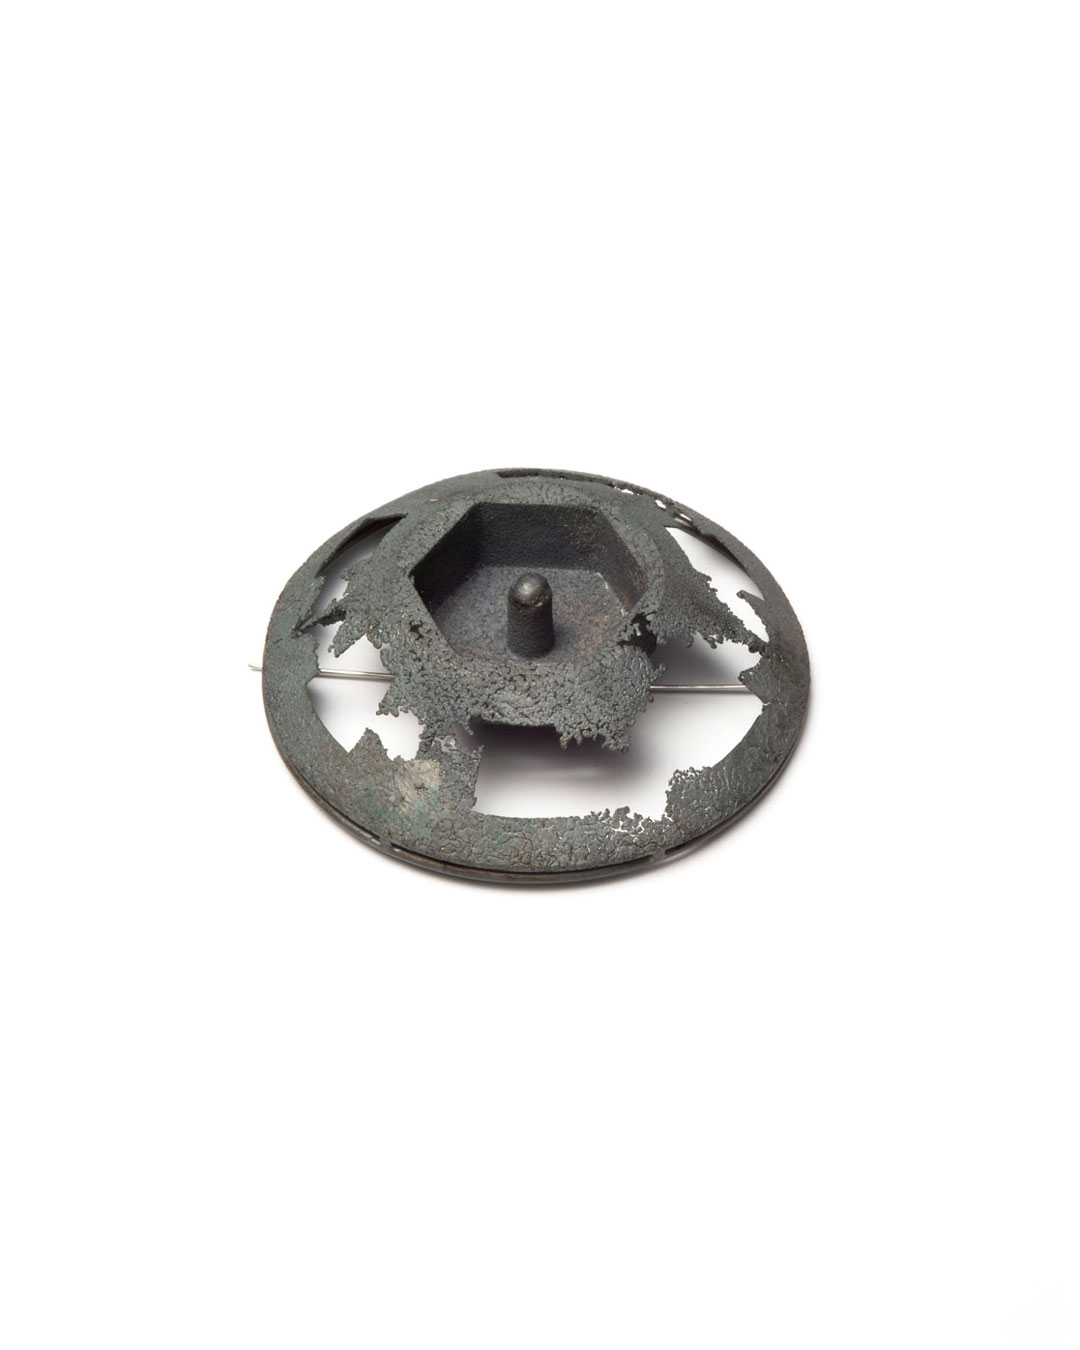 Winfried Krüger, untitled, 2008, brooch; oxidised silver, 90 x 90 mm, €1455